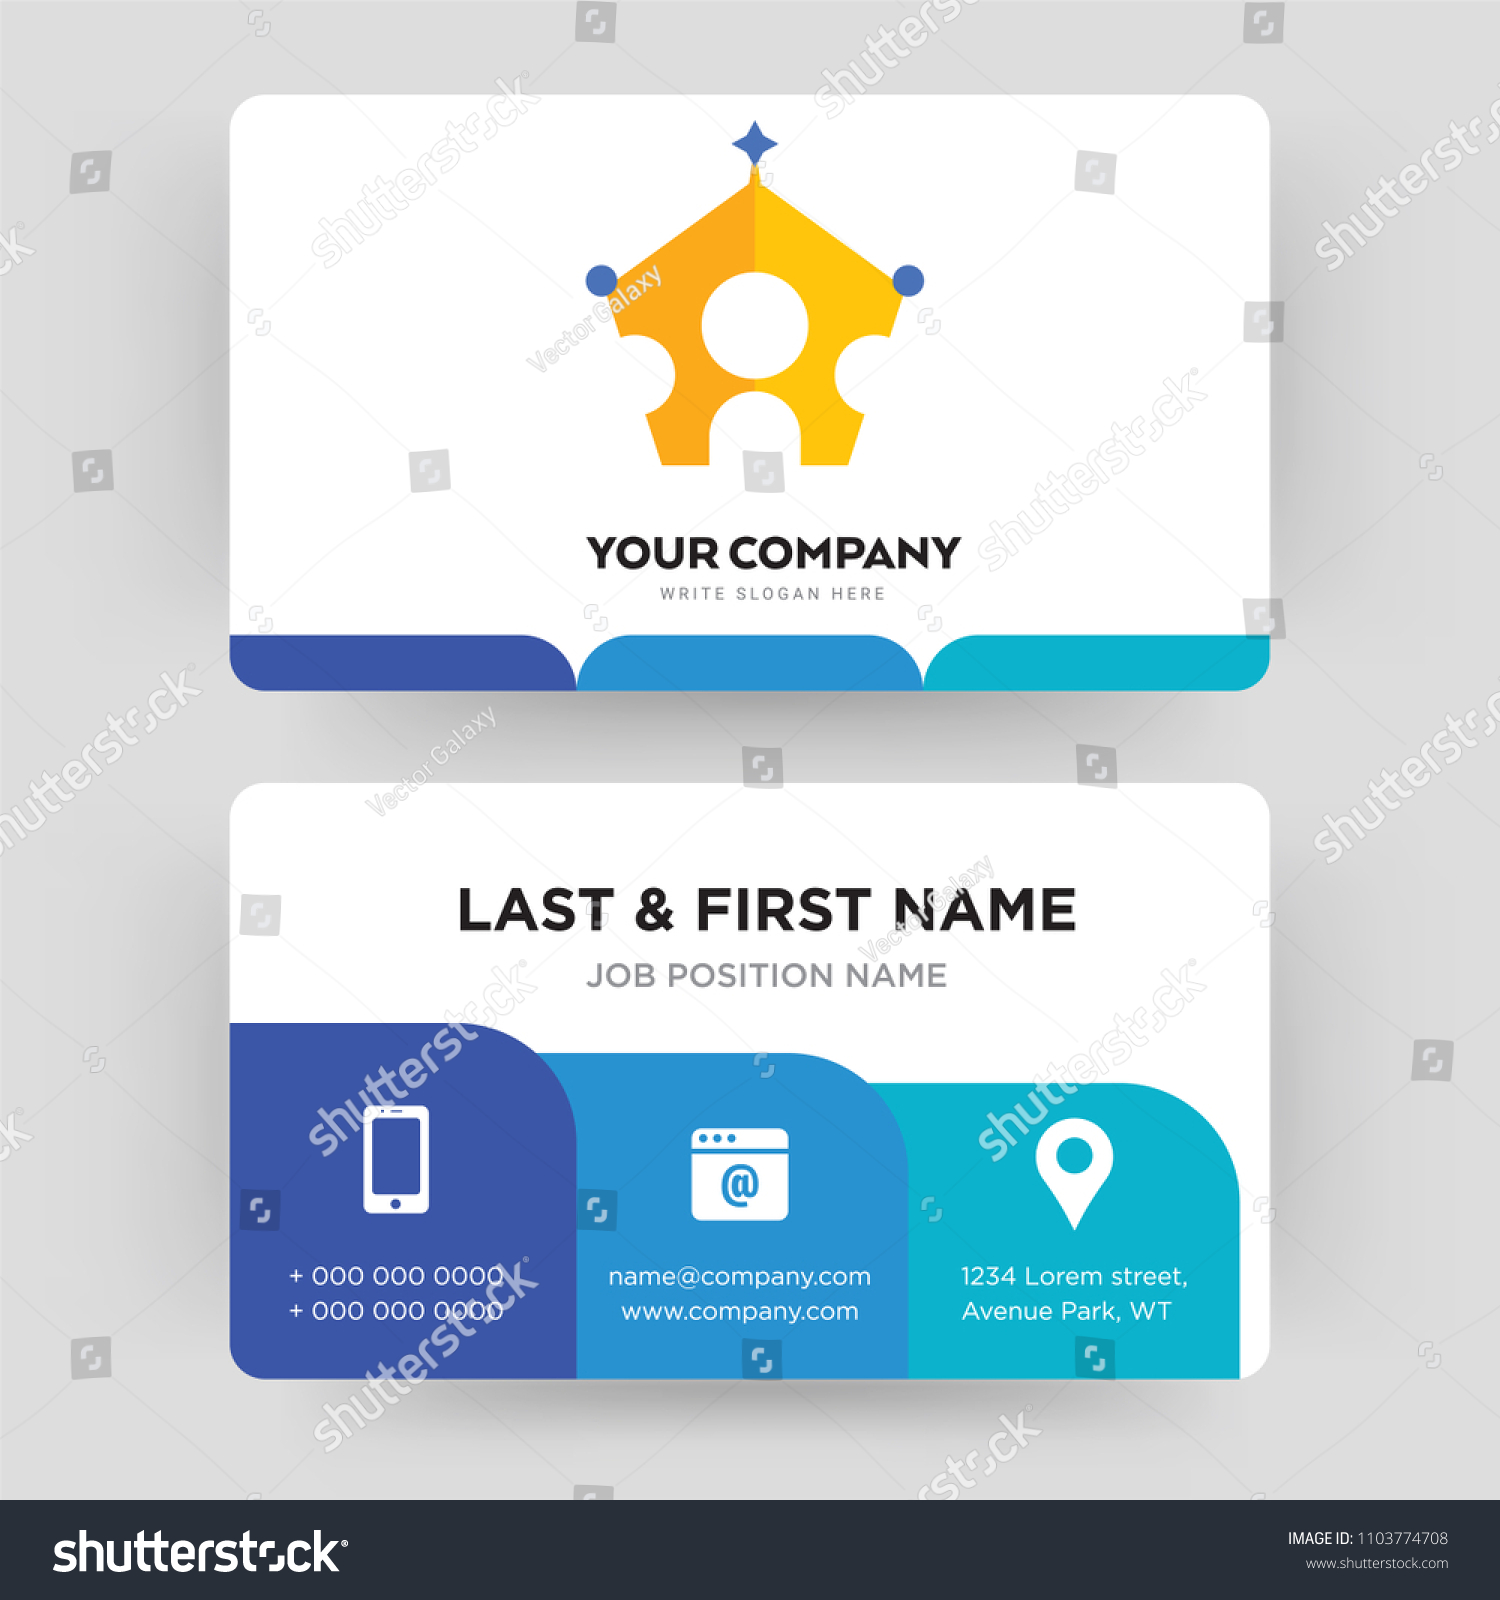 Royal Family Business Card Design Template Stock Photo (Photo ...